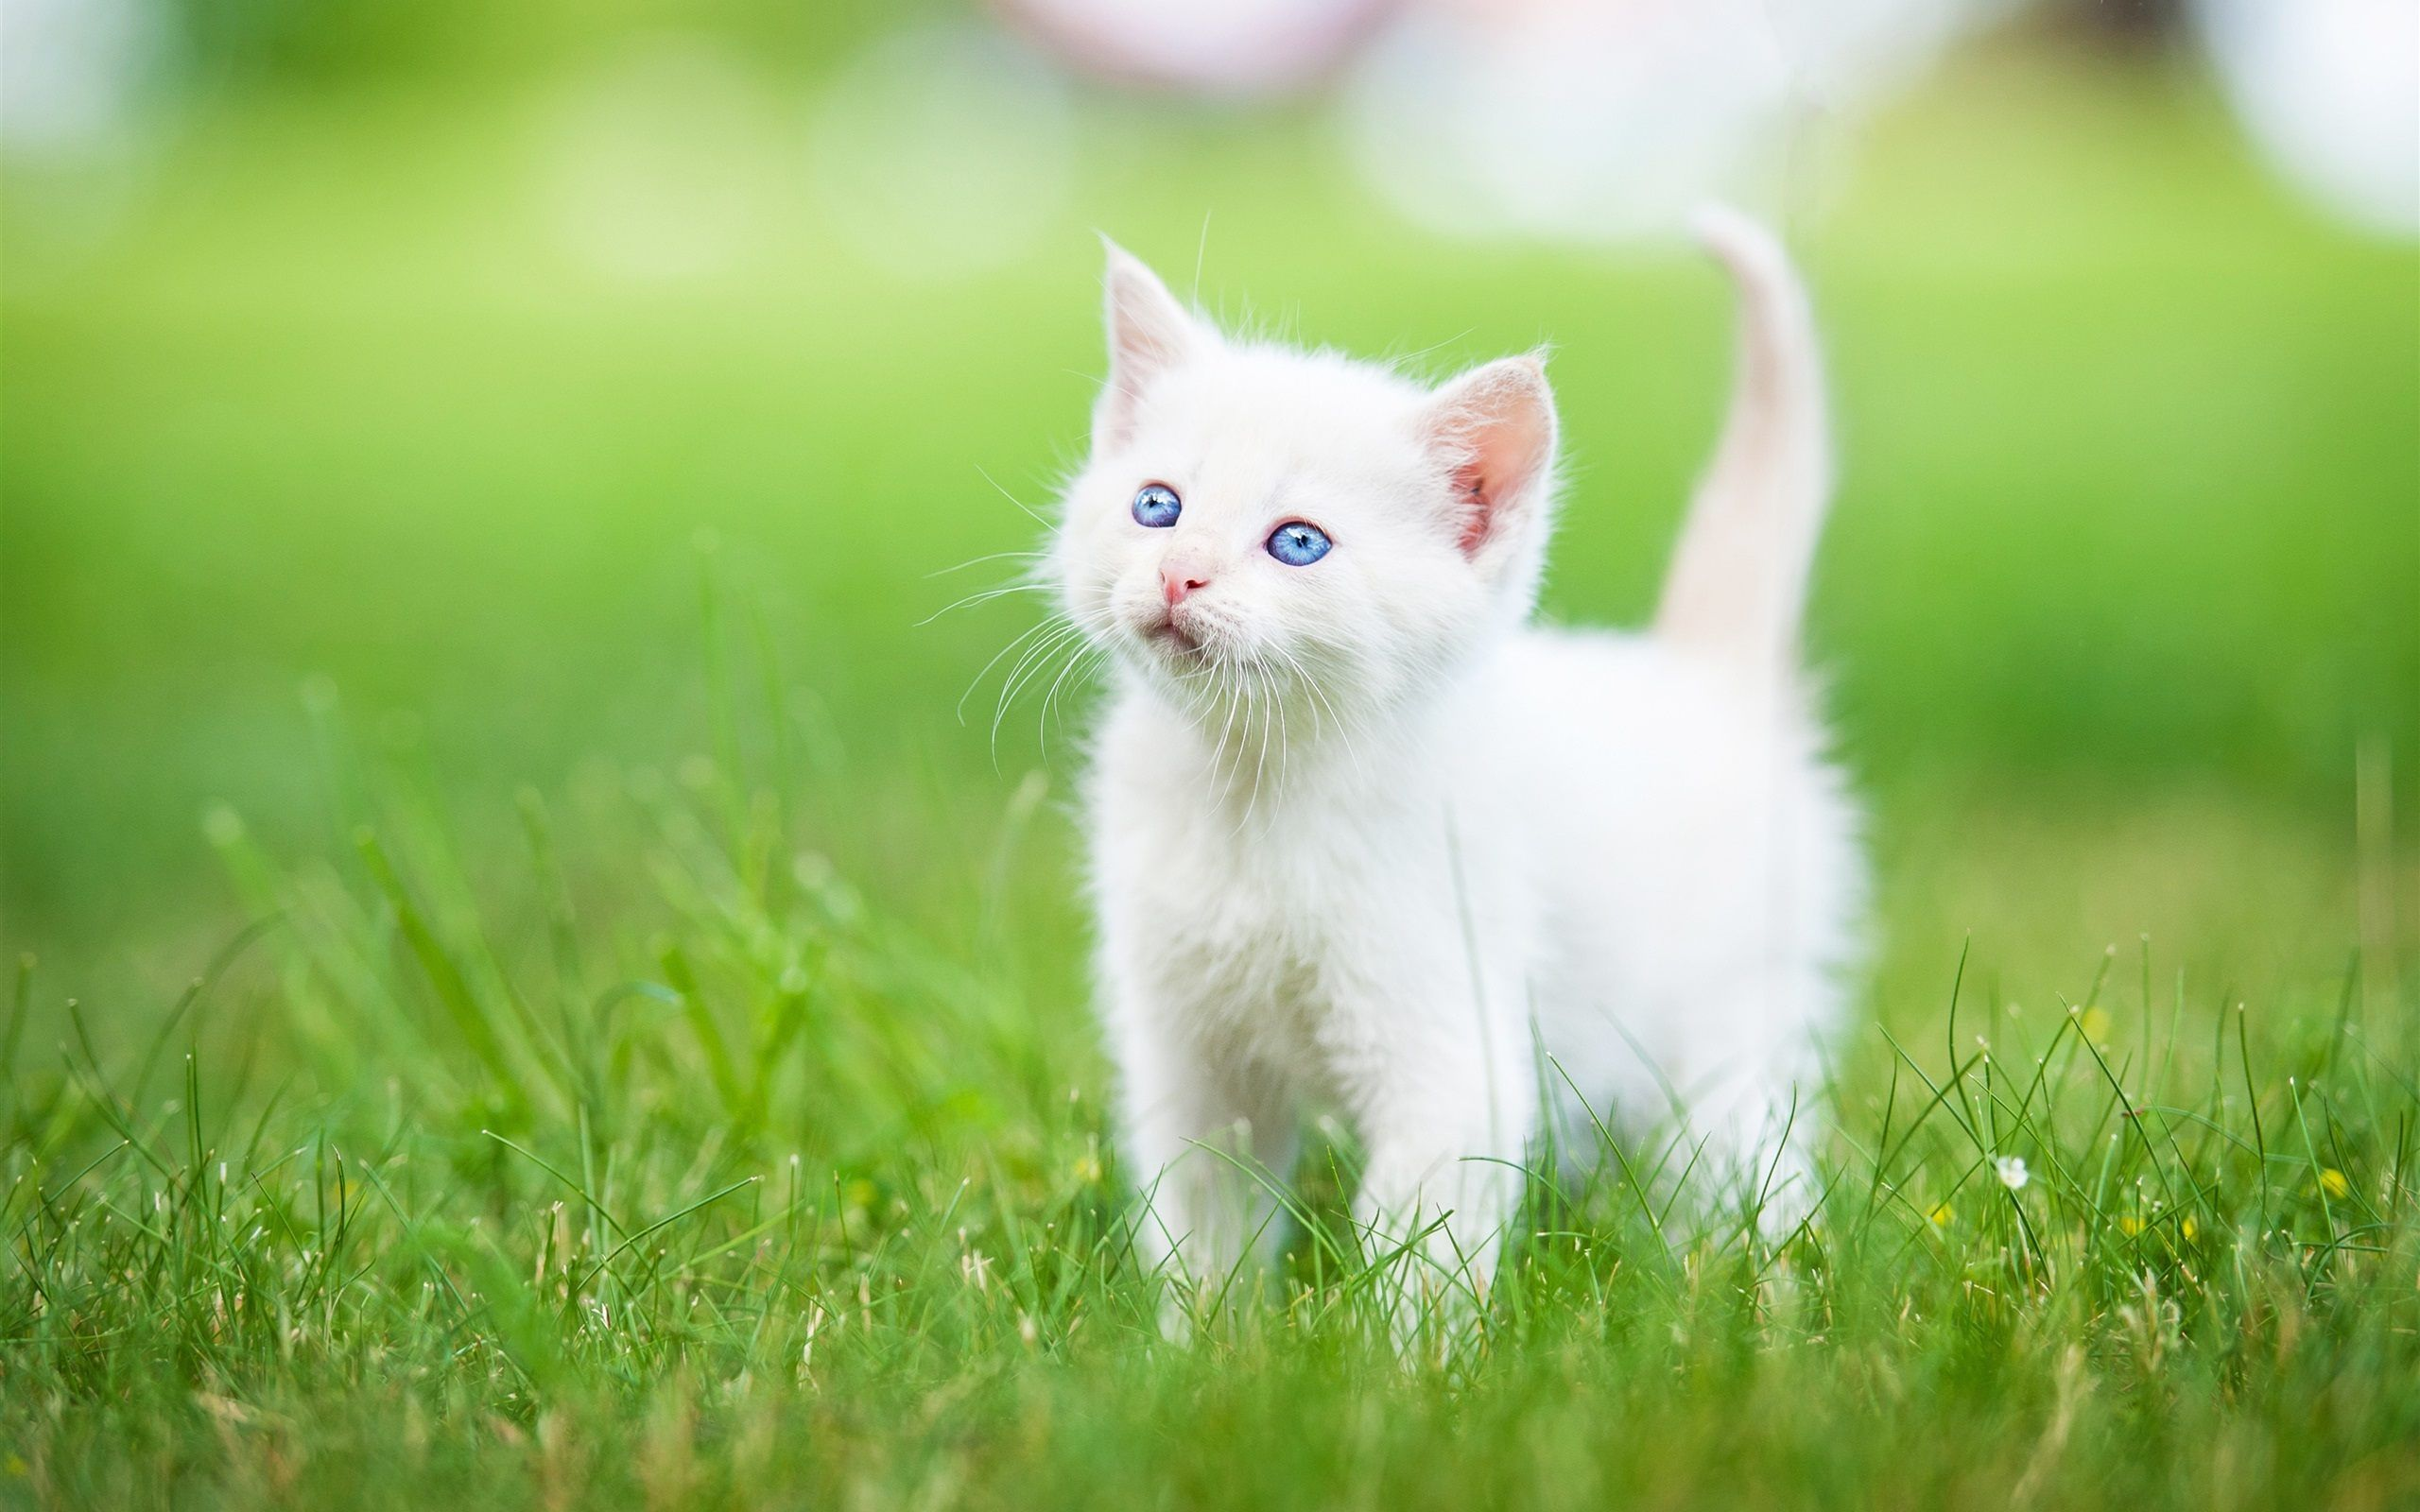 cute cat wallpaper download for desktop, laptop & mobile | lovely